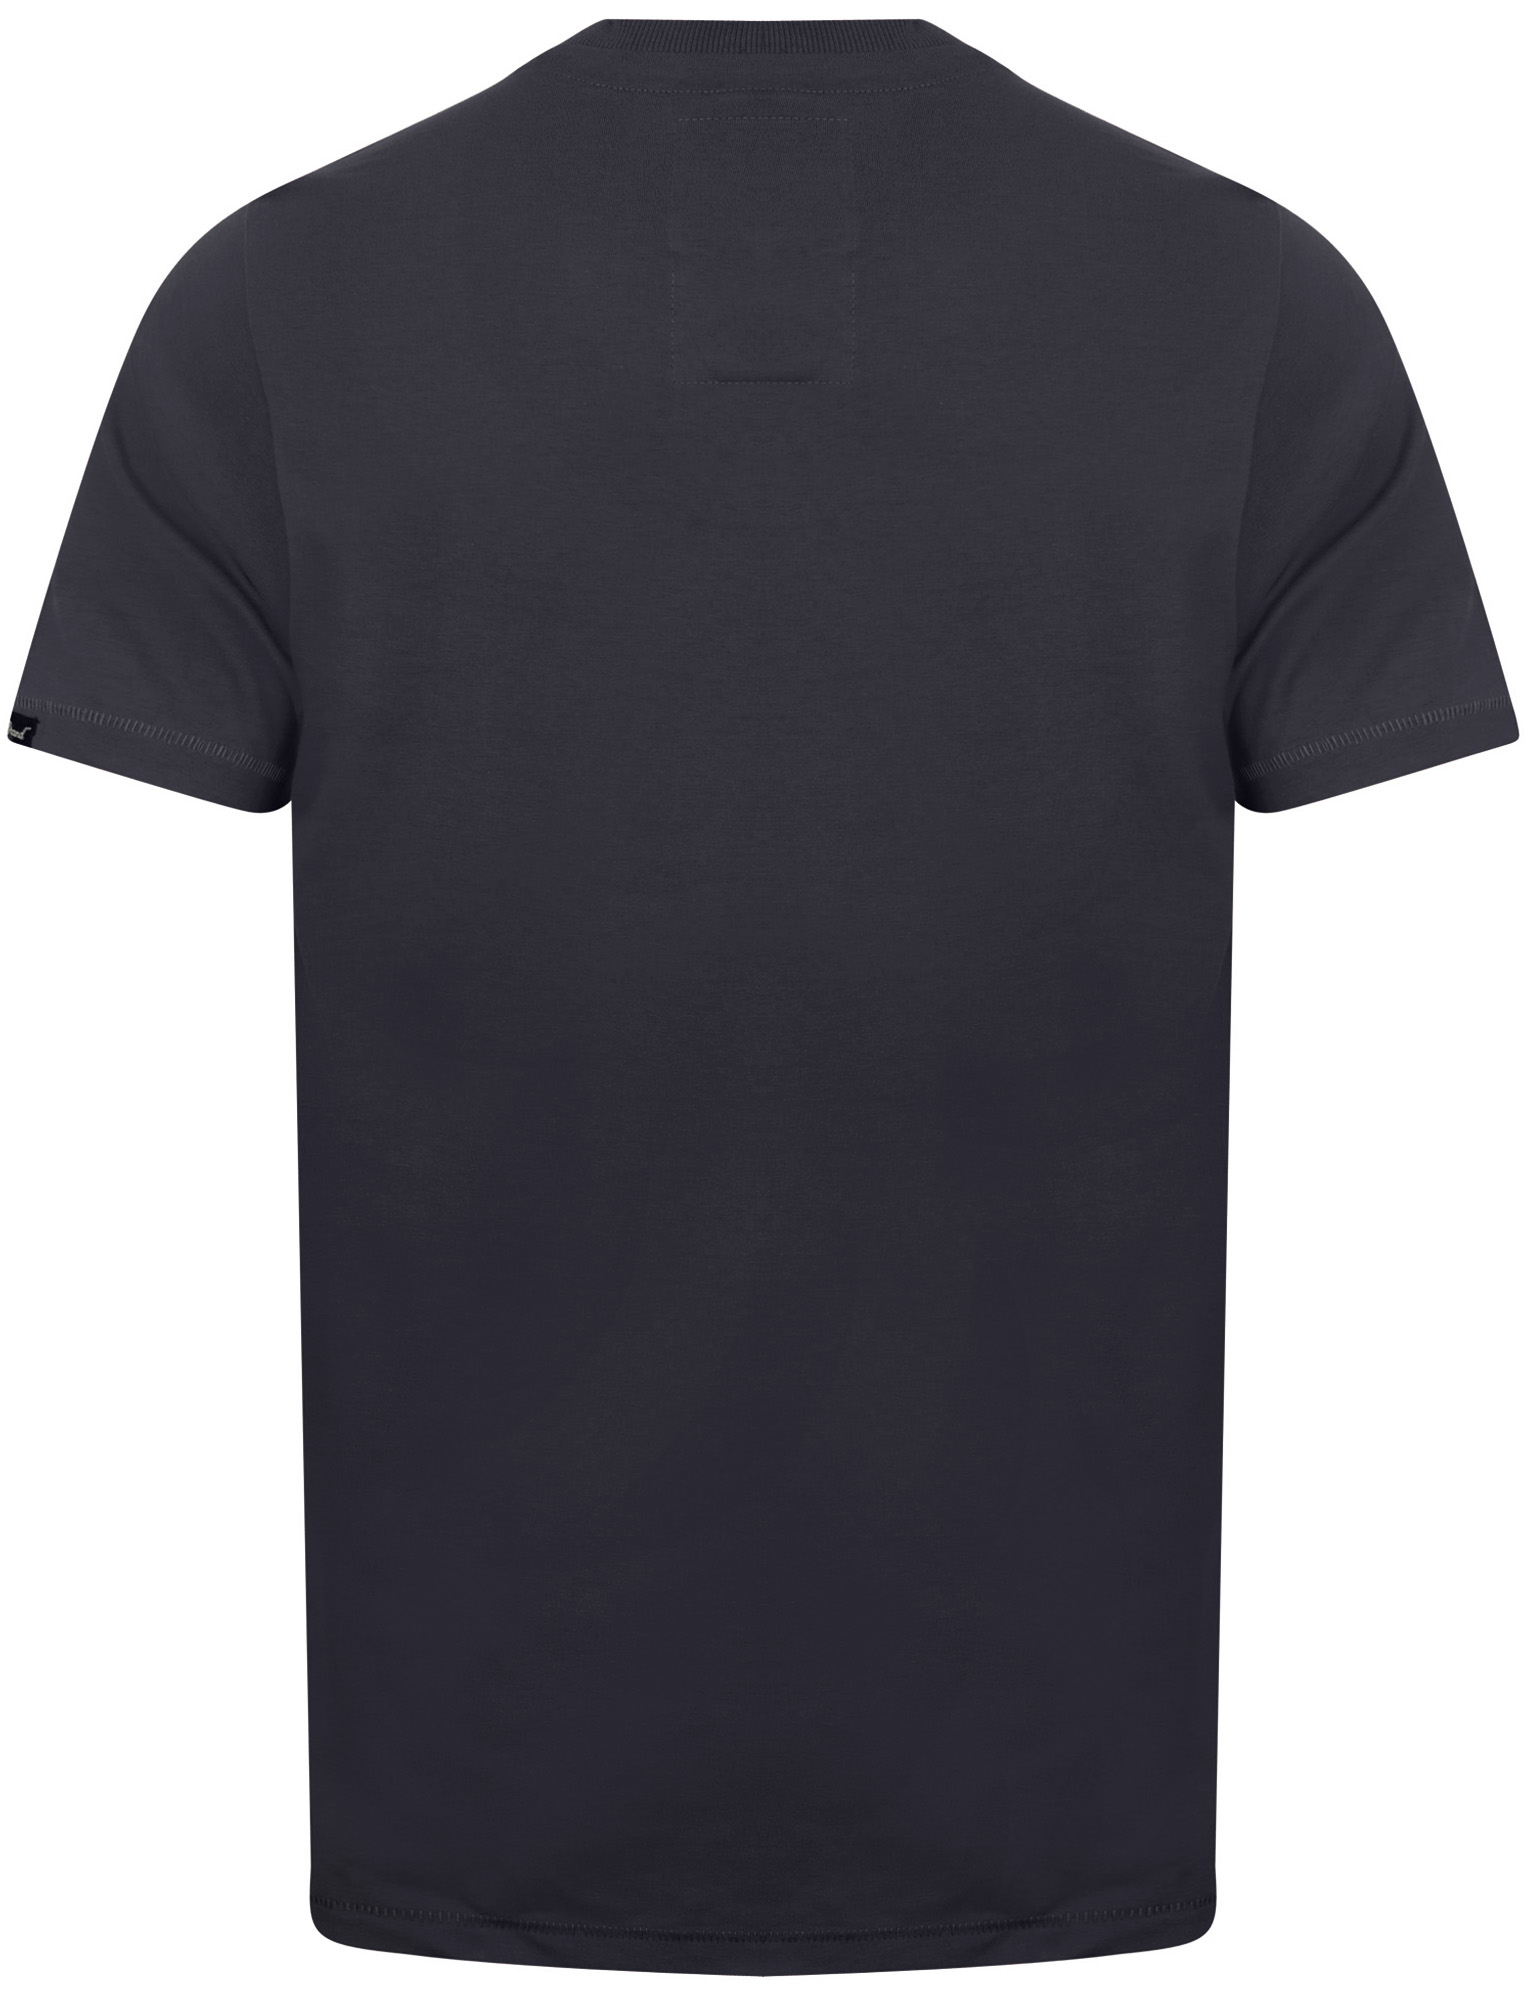 New-Mens-Tokyo-Laundry-Montecarlo-Crew-Neck-Cotton-Rich-Soft-T-Shirt-Size-S-XXL thumbnail 6